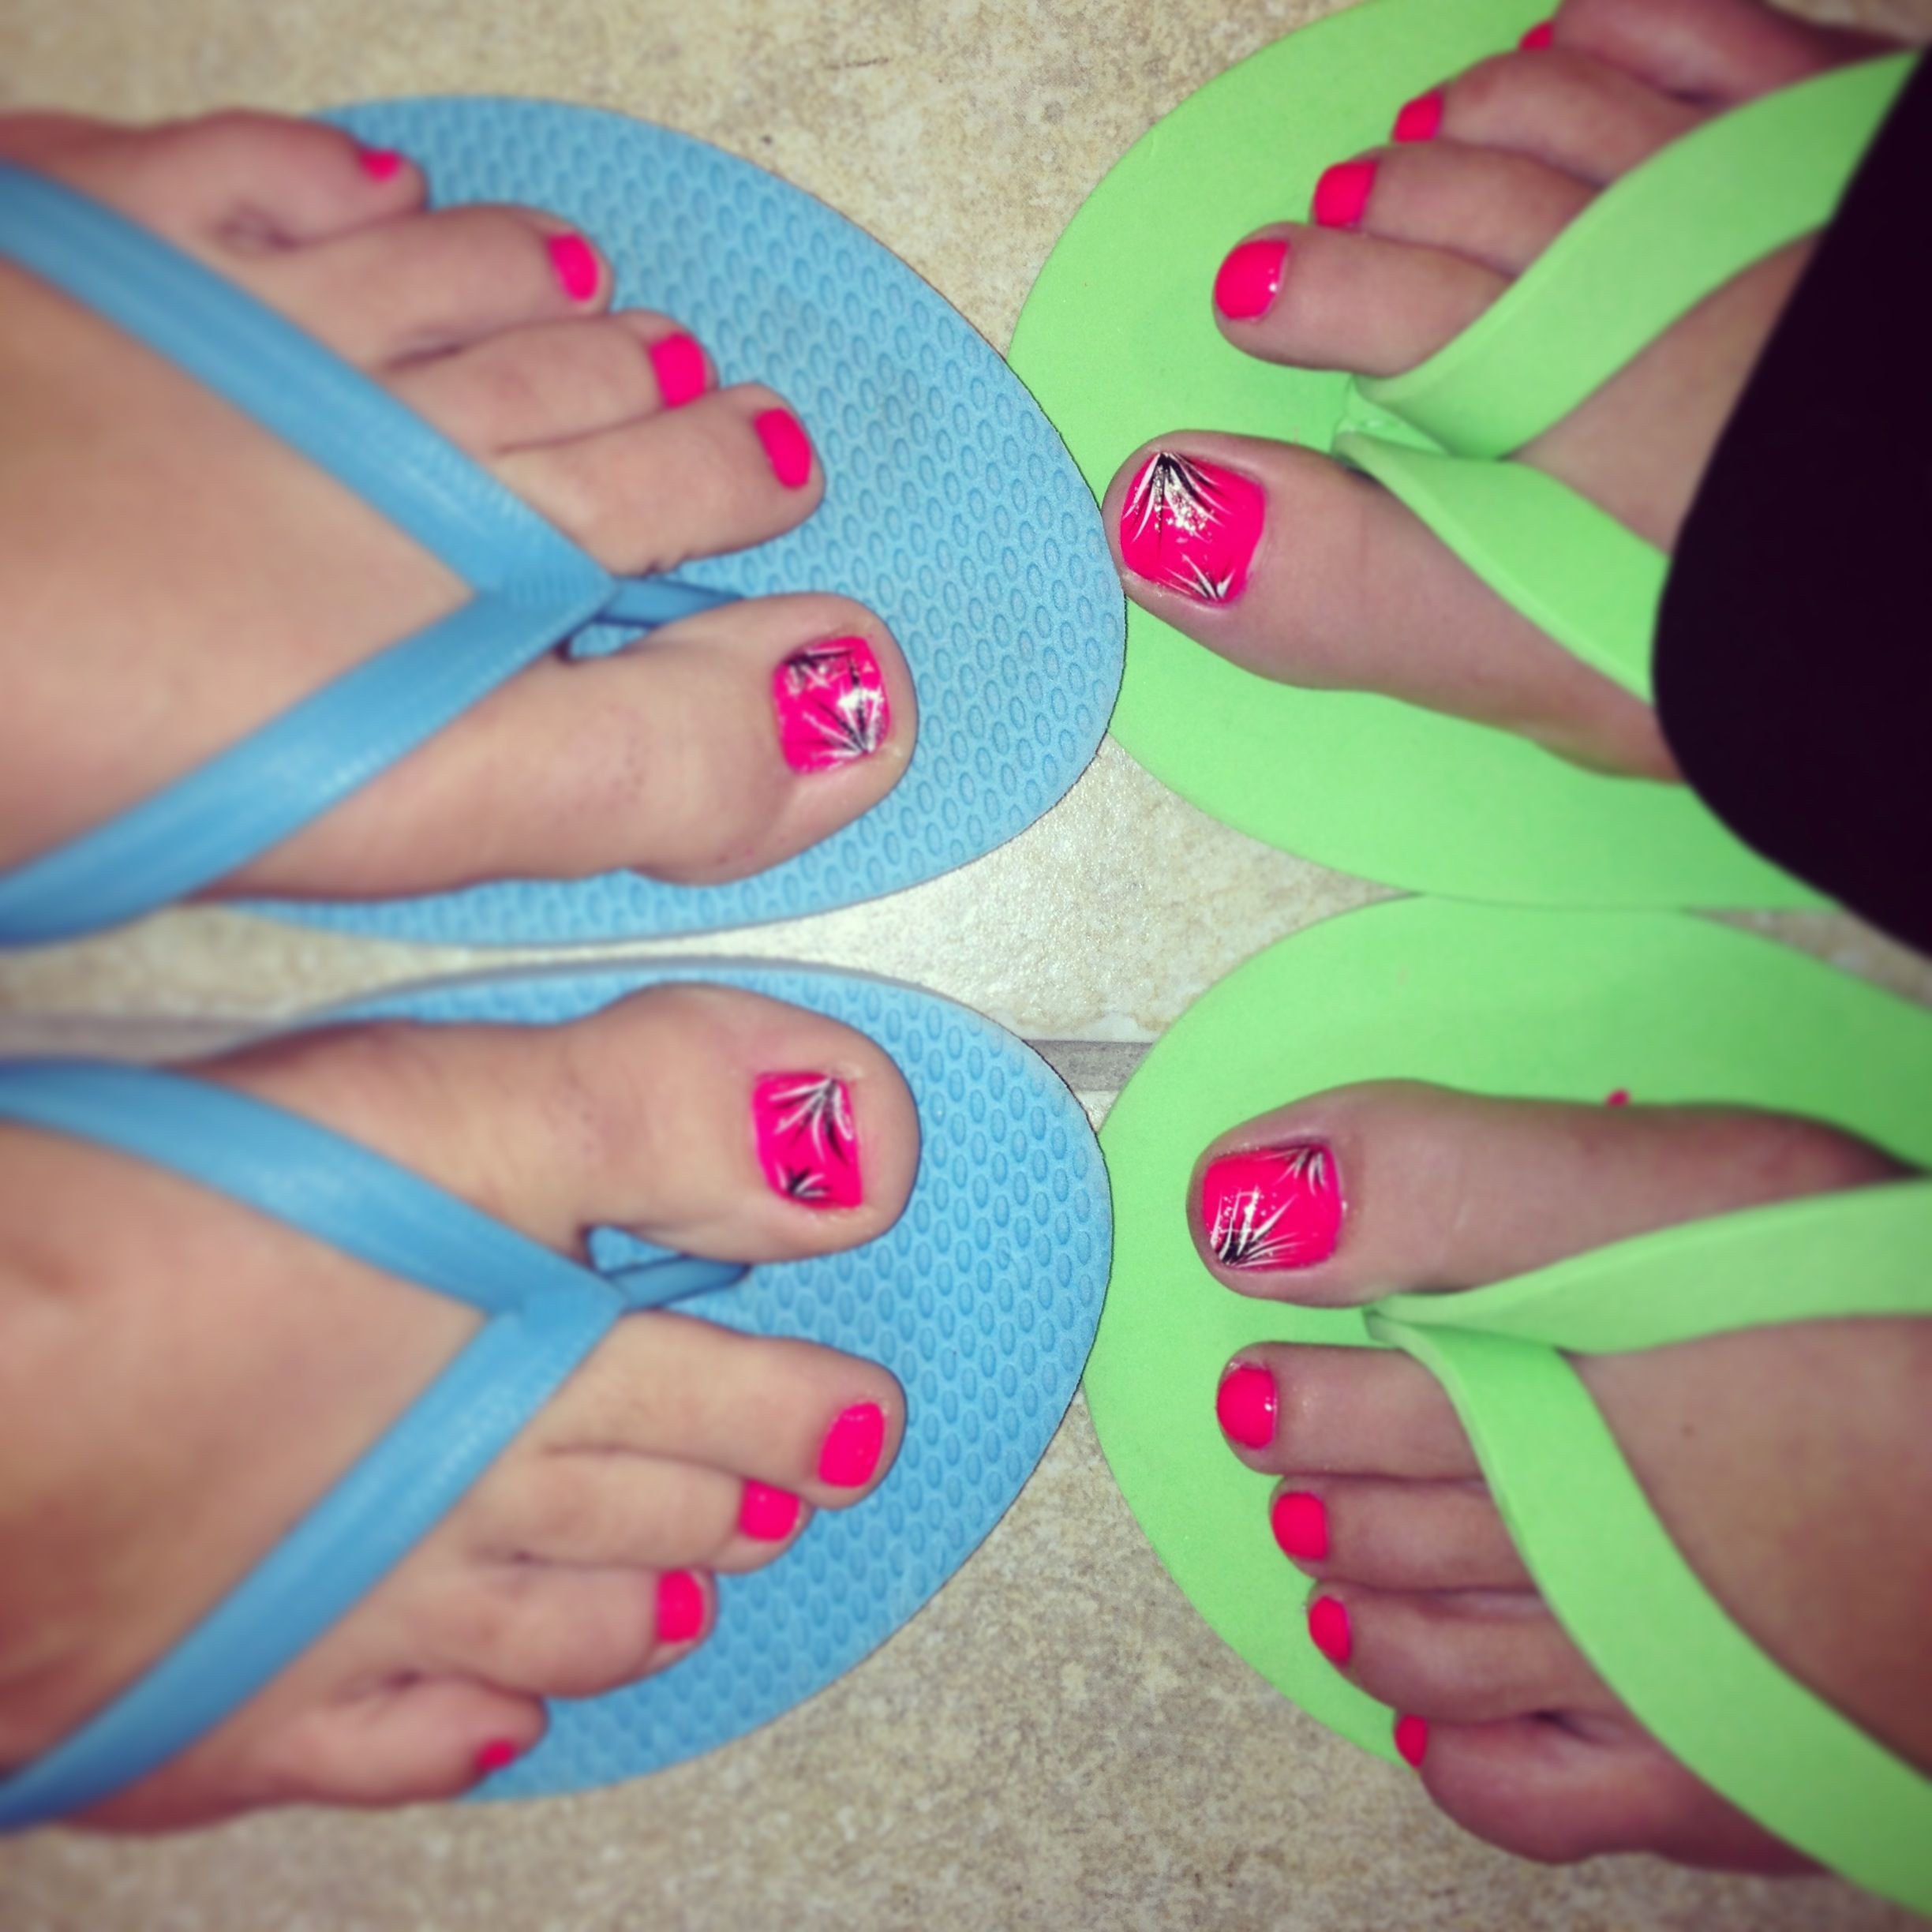 My best friend and me got matching toe nail designs! | Hair & Beauty ...